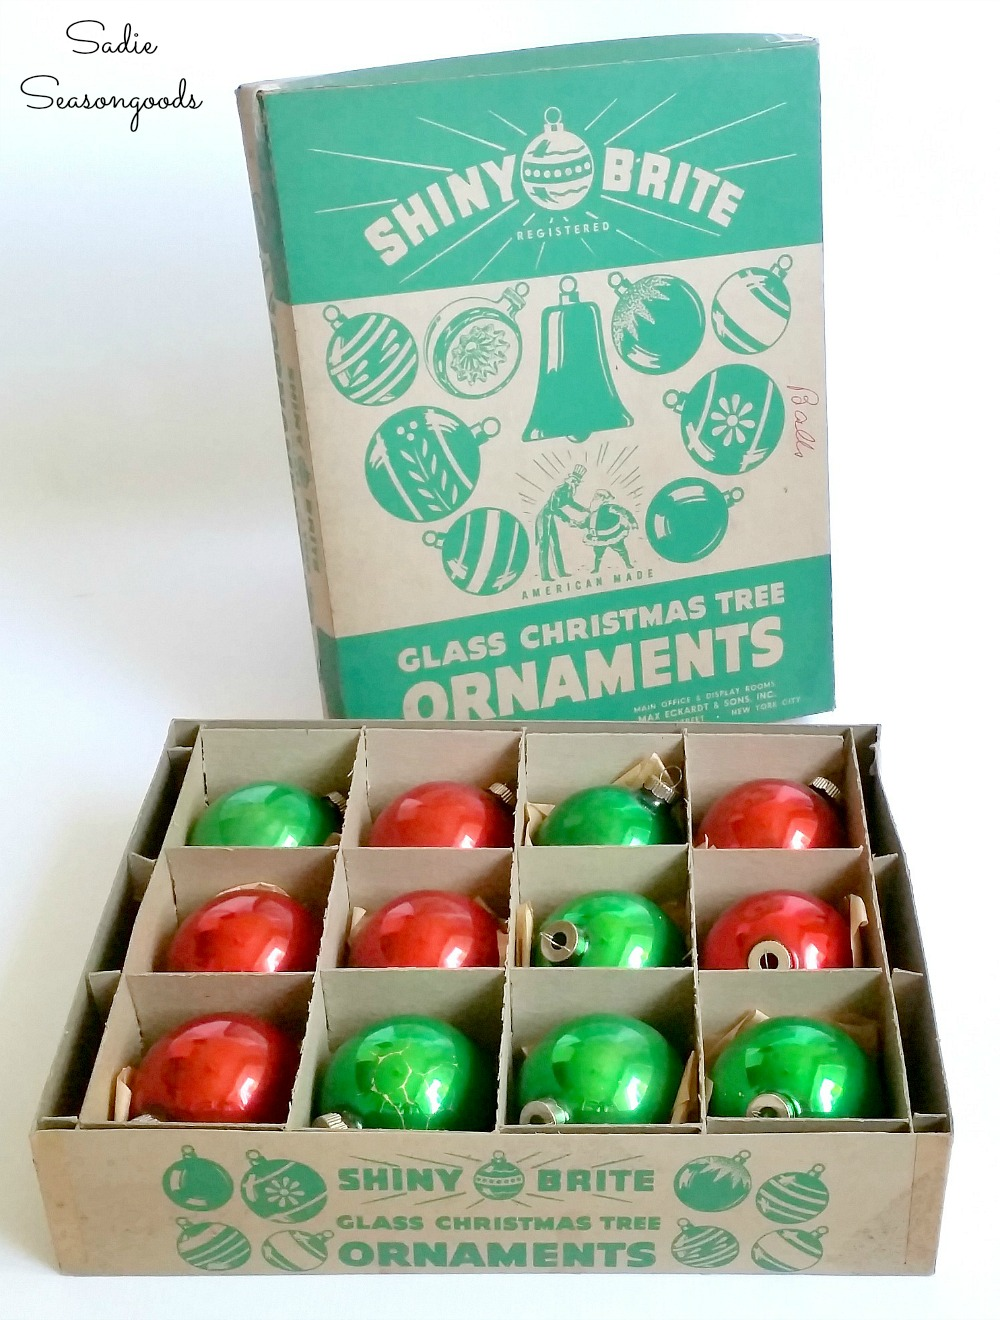 Shiny Brite Ornaments in original box for displaying in a bottle crate